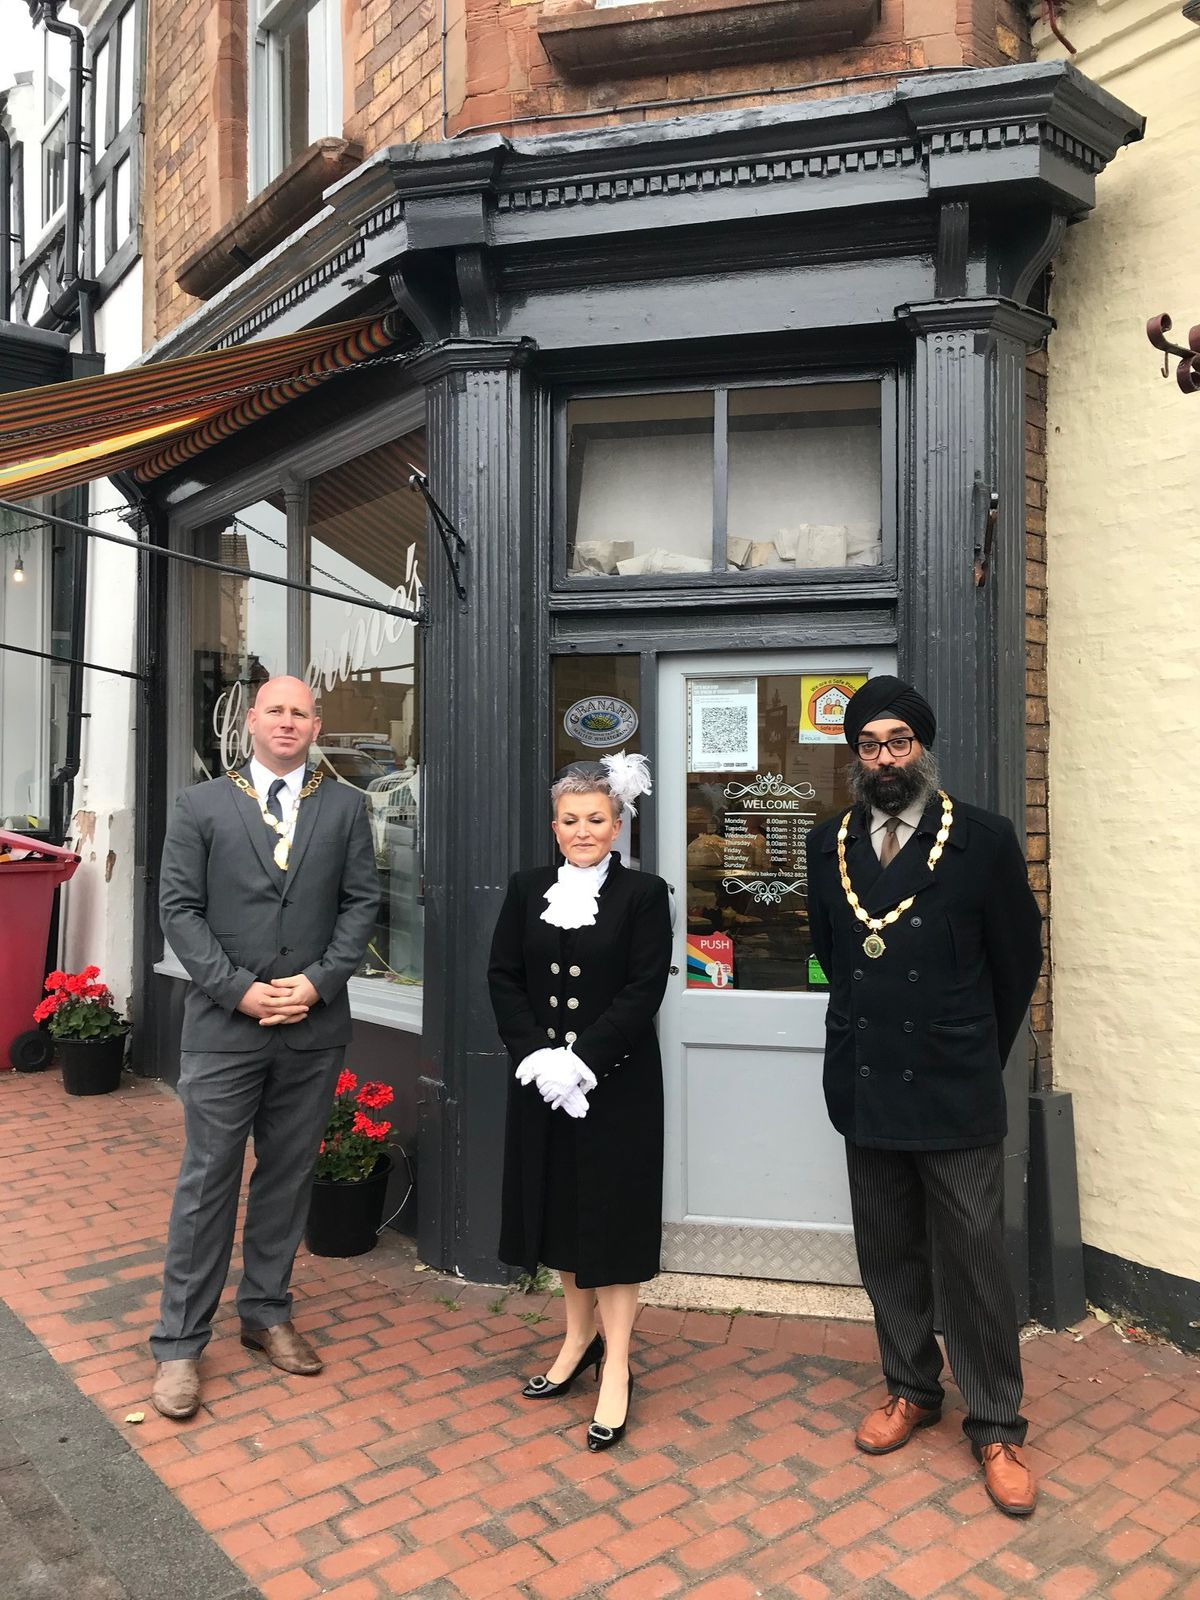 Broseley deputy mayor, councillor Mark Garbett, with the High Sheriff of Shropshire Dean Harris and town mayor councillor Tarlochen Singh-Mohr